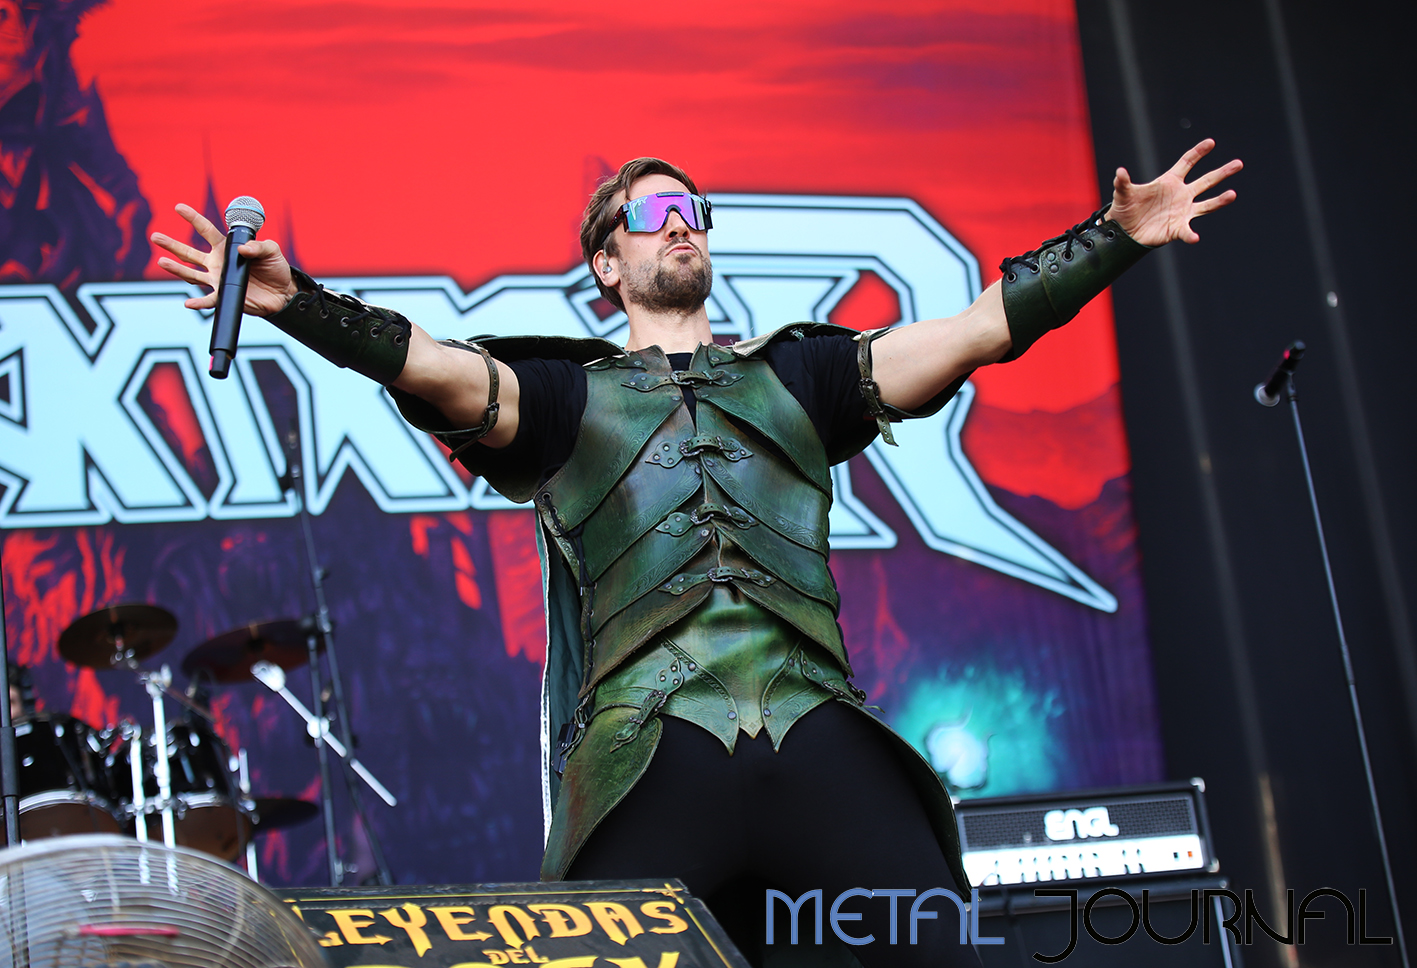 gloryhammer - leyendas del rock 2019 metal journal pic 4